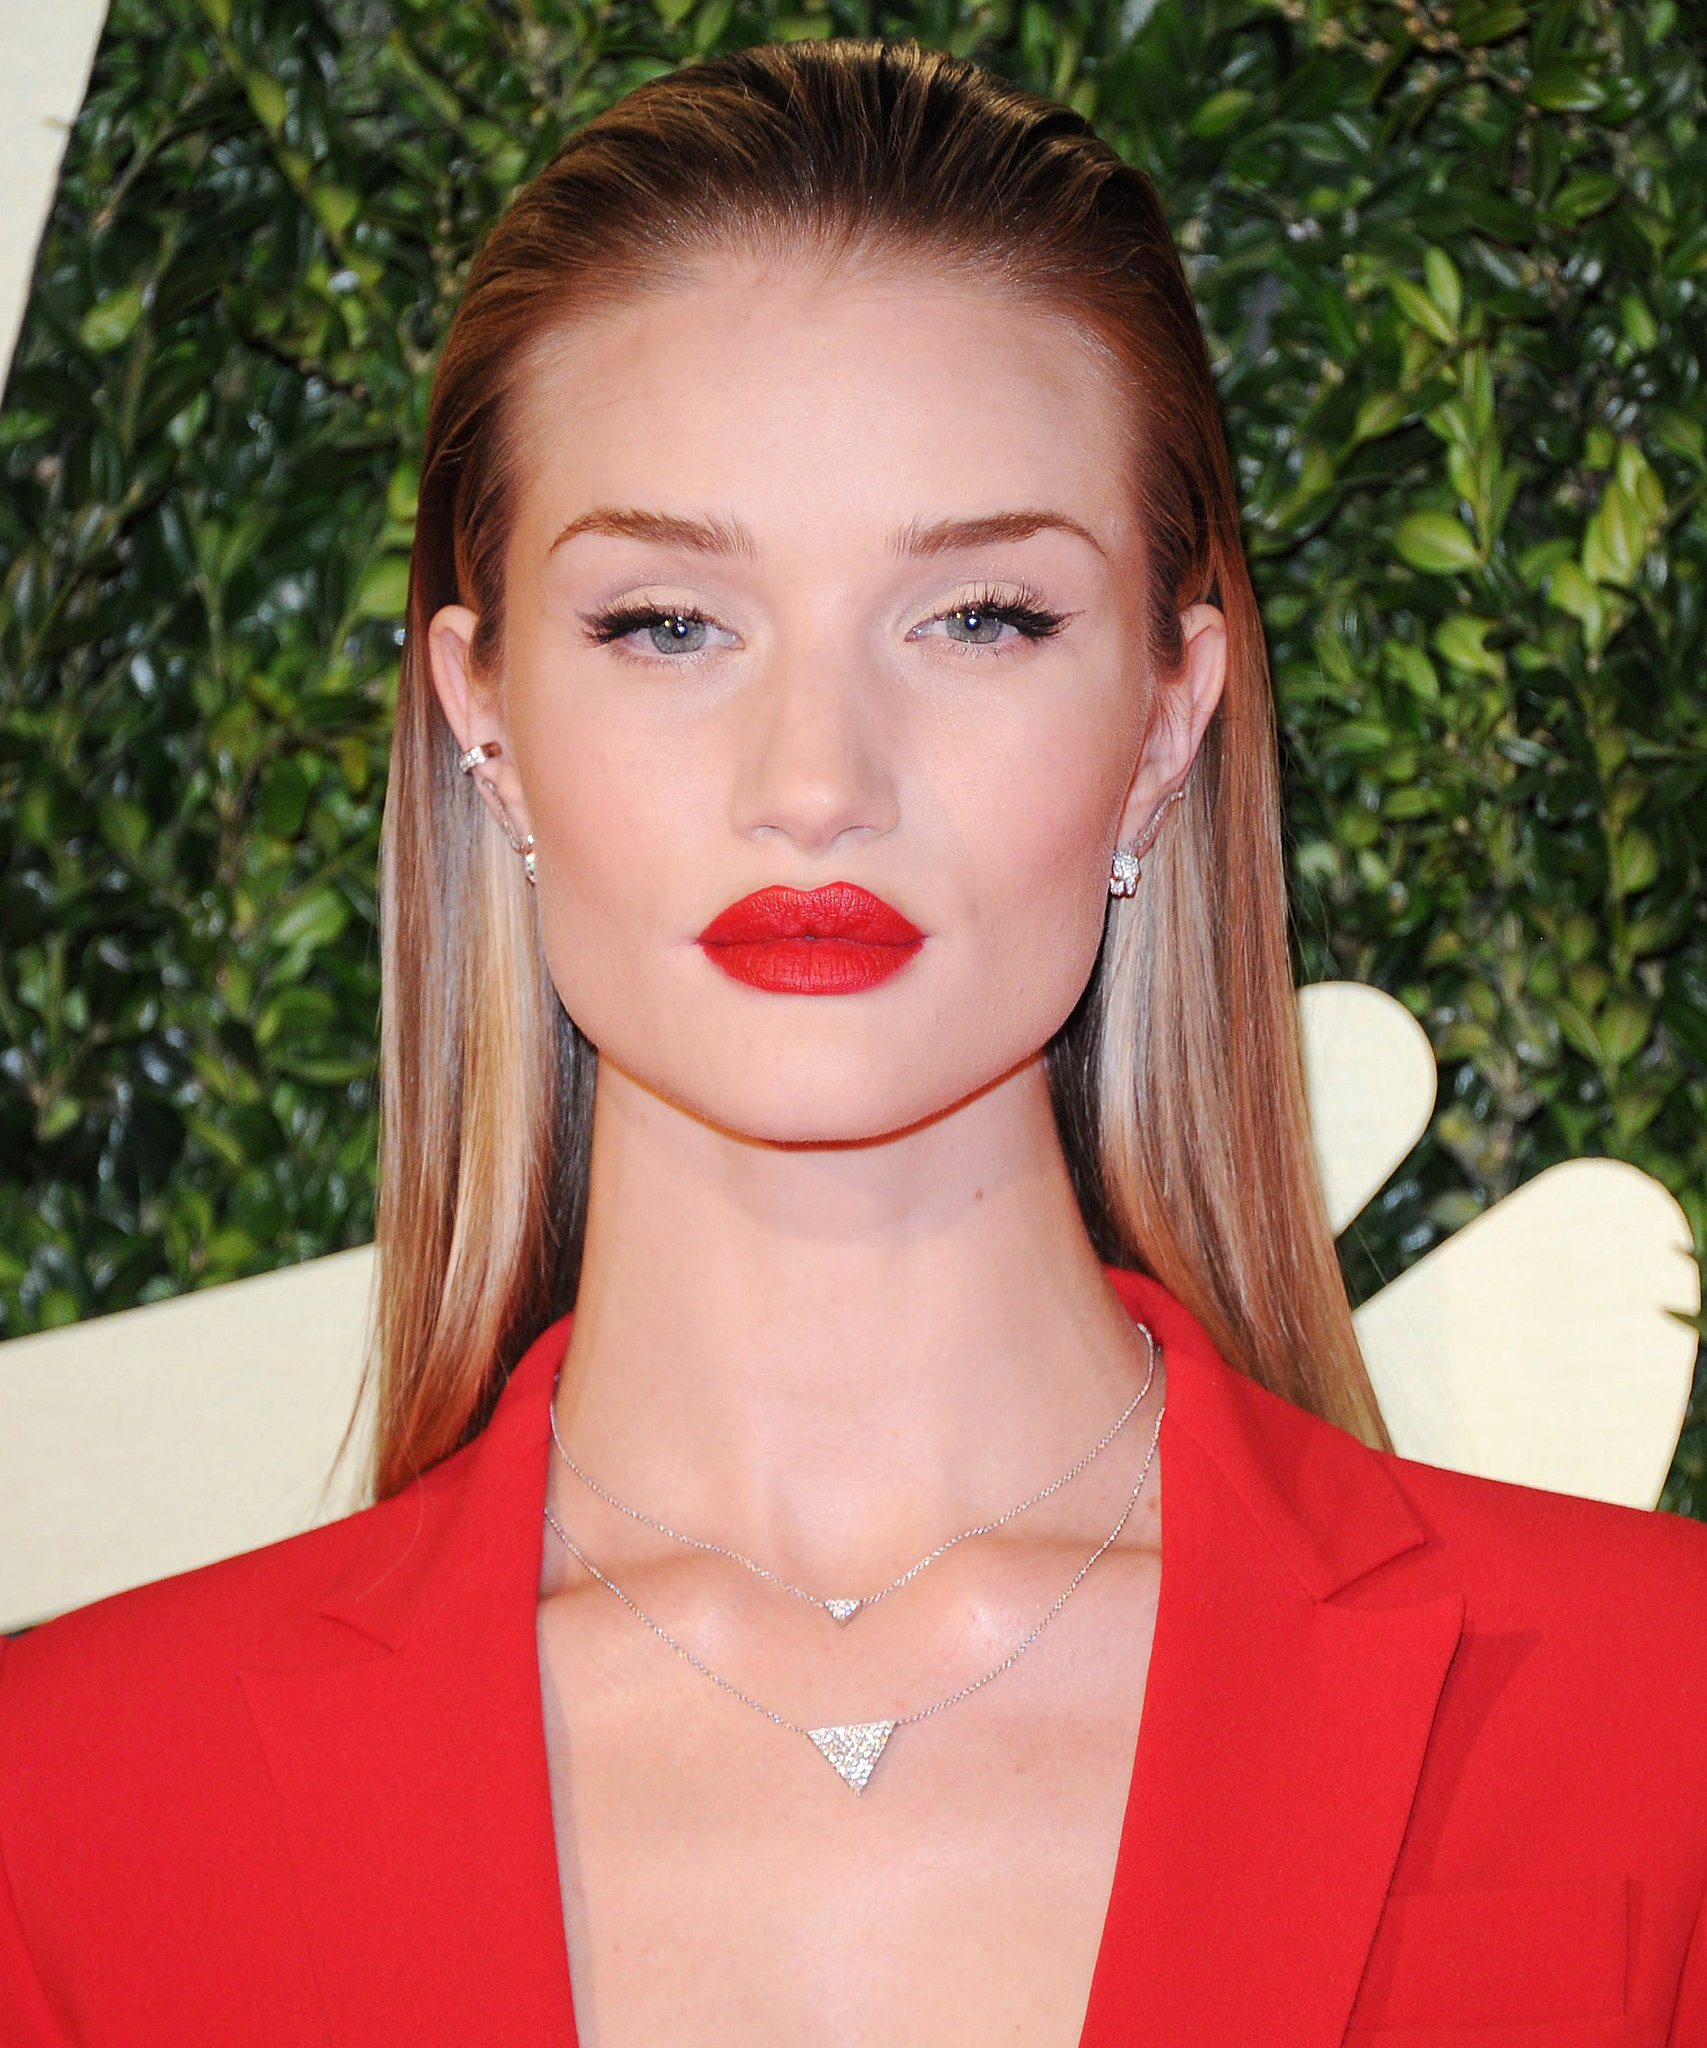 With her hair slicked back, Rosie Huntington-Whiteley's ... Rosie Huntington Whiteley Lipstick